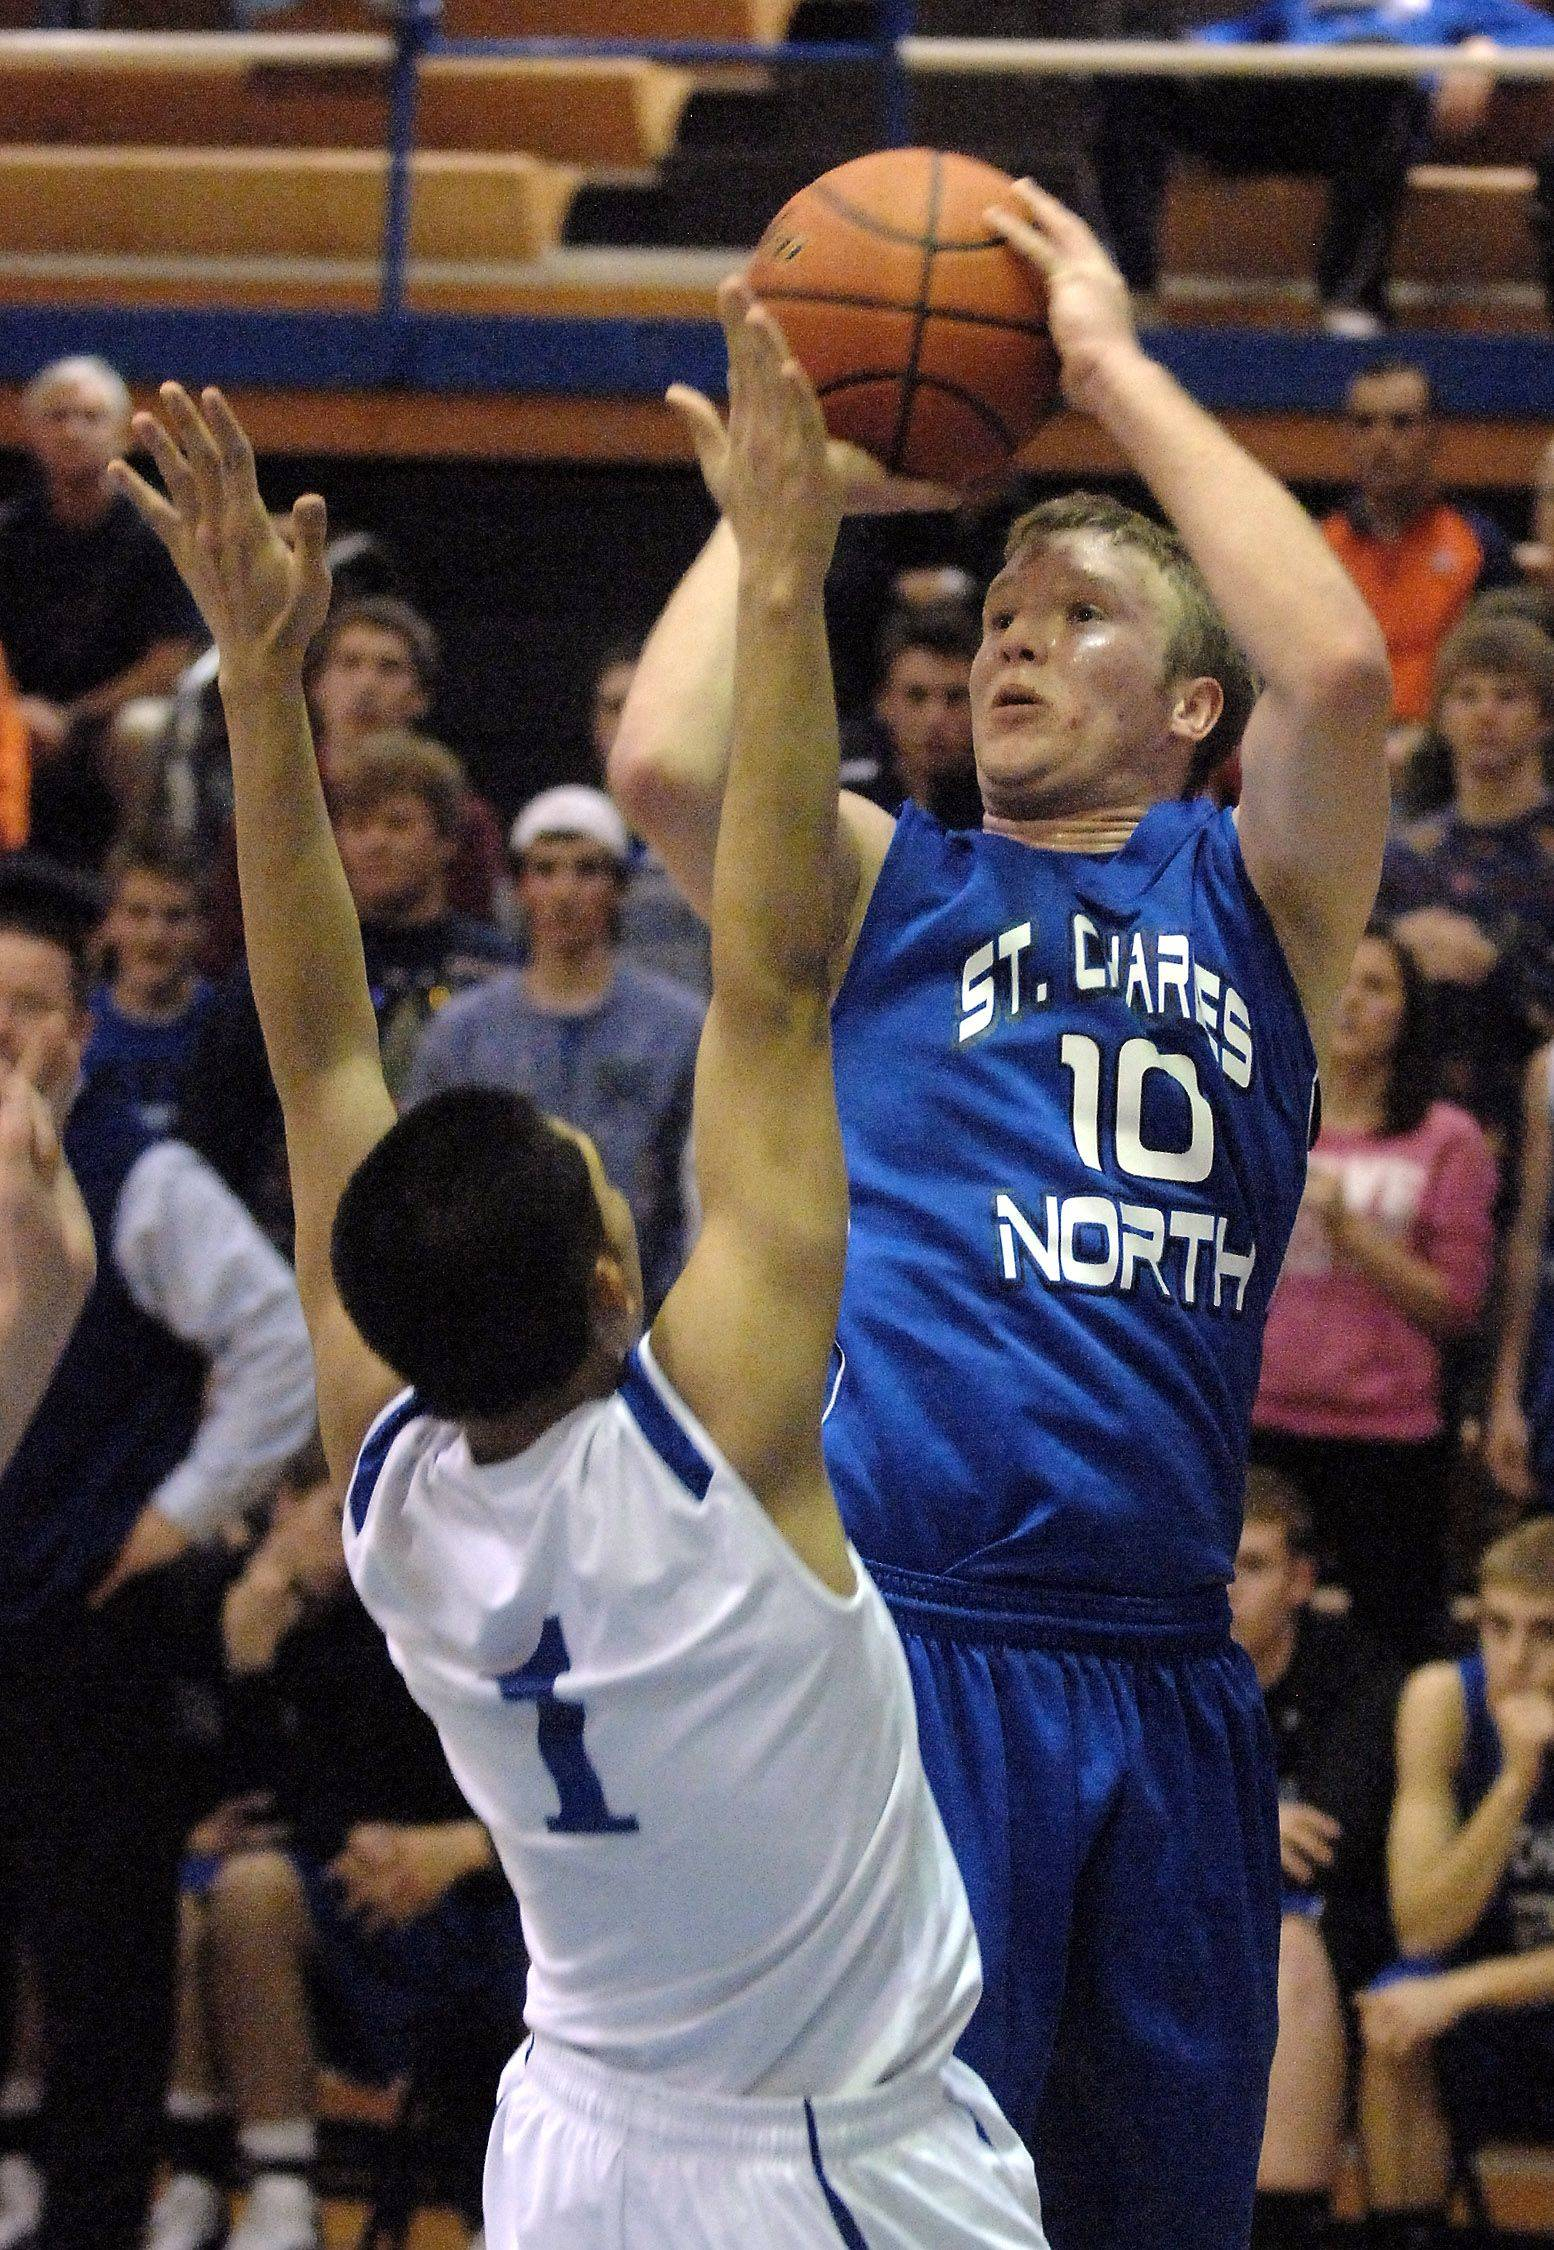 St. Charles North's Chris Conrad shoots a jumper over Vincent Sarangaya.